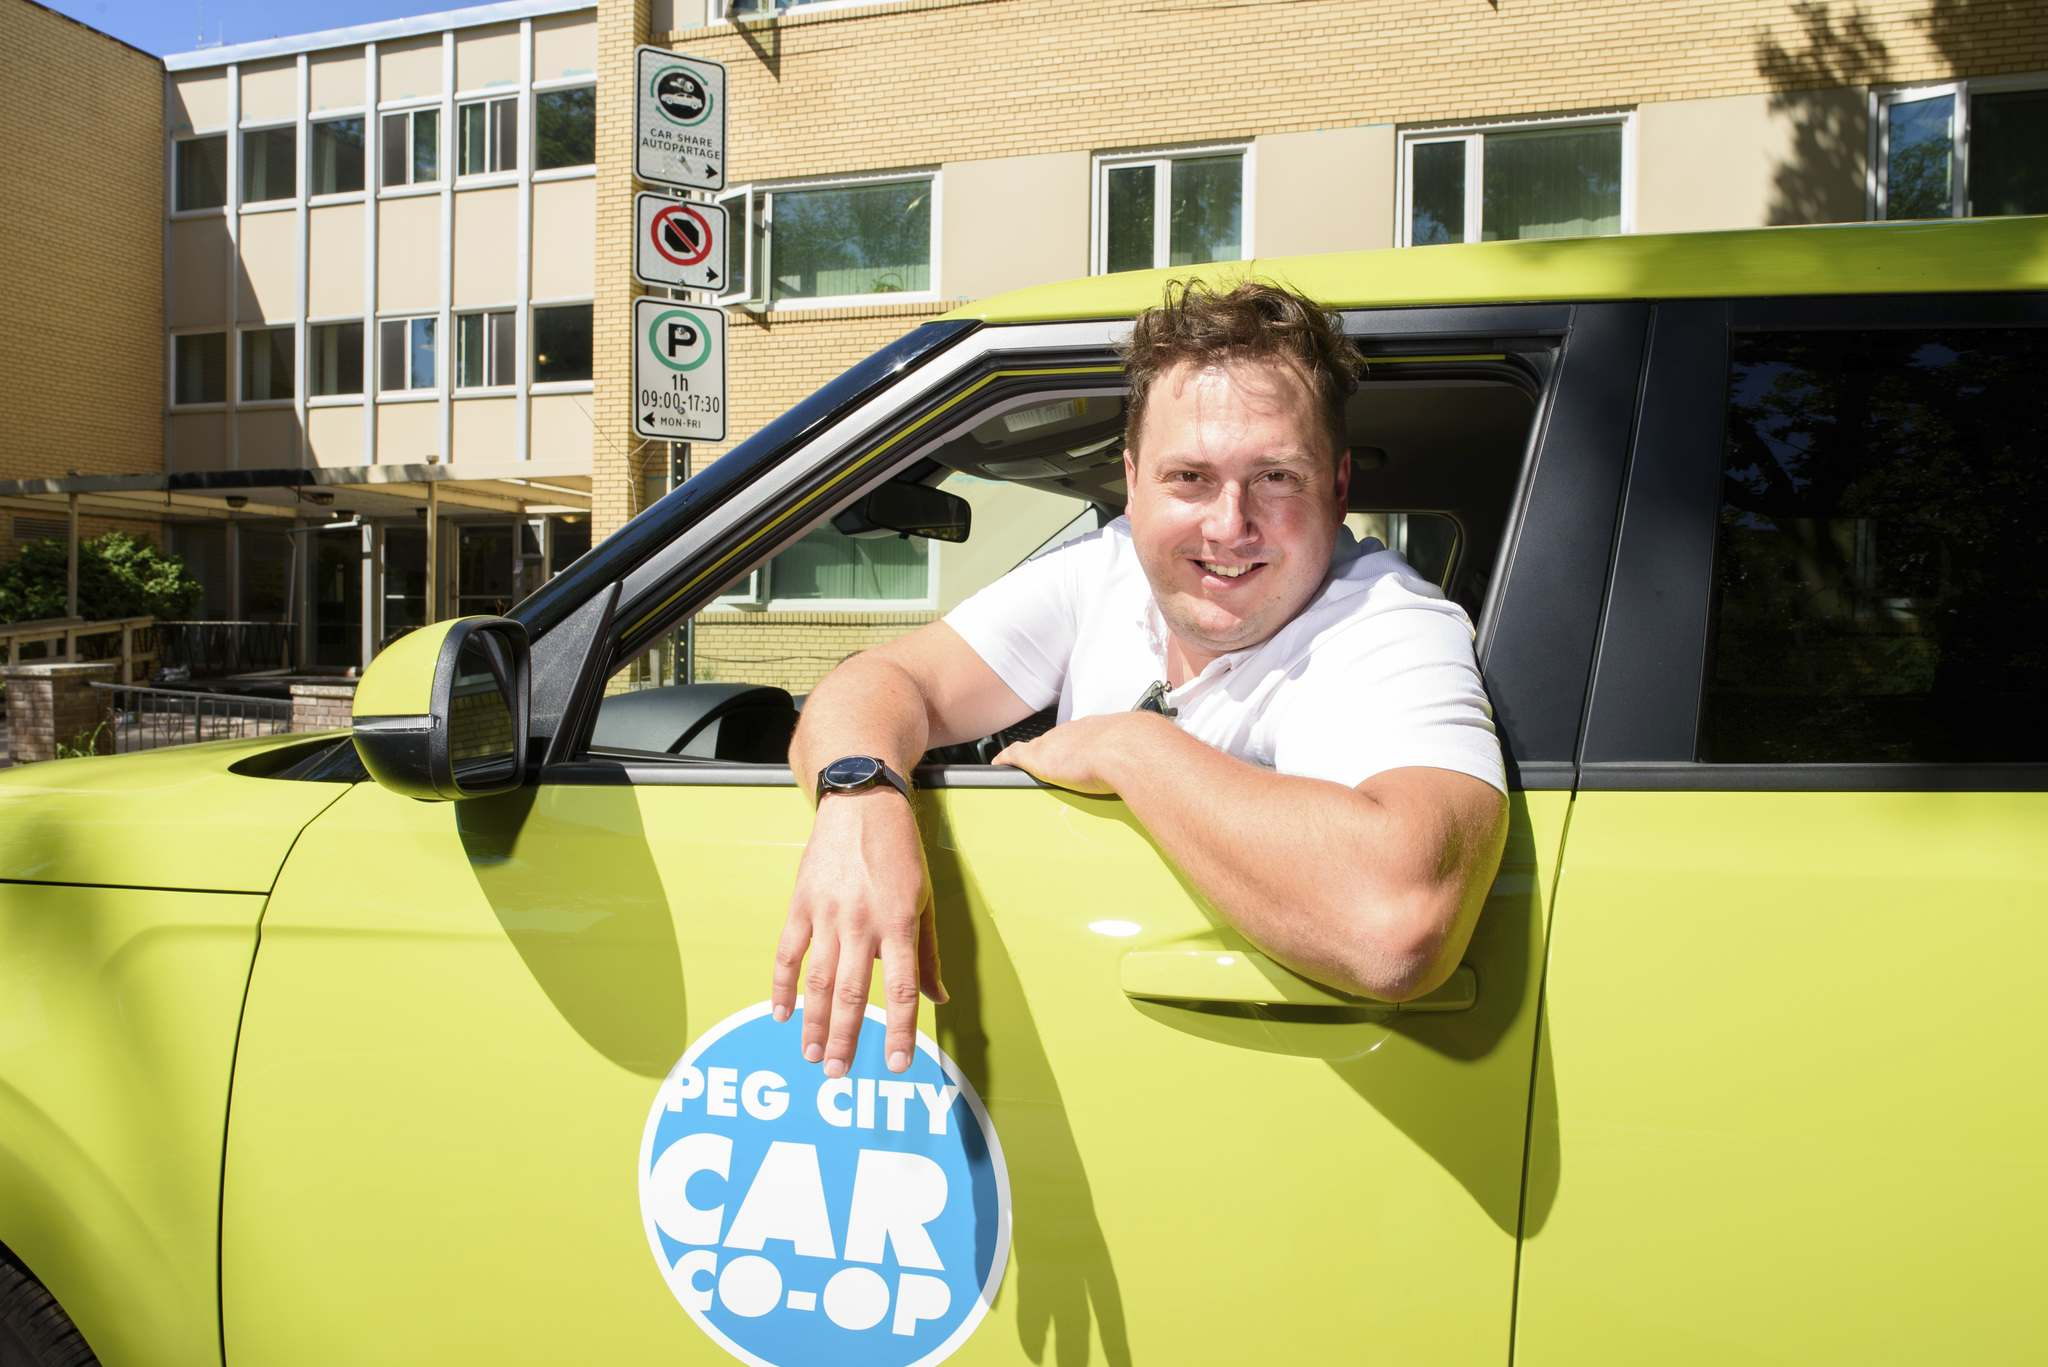 Philip Mikulec, Peg City Car Co-op's managing director. There are now 60 Peg City vehicles on the streets of Winnipeg.